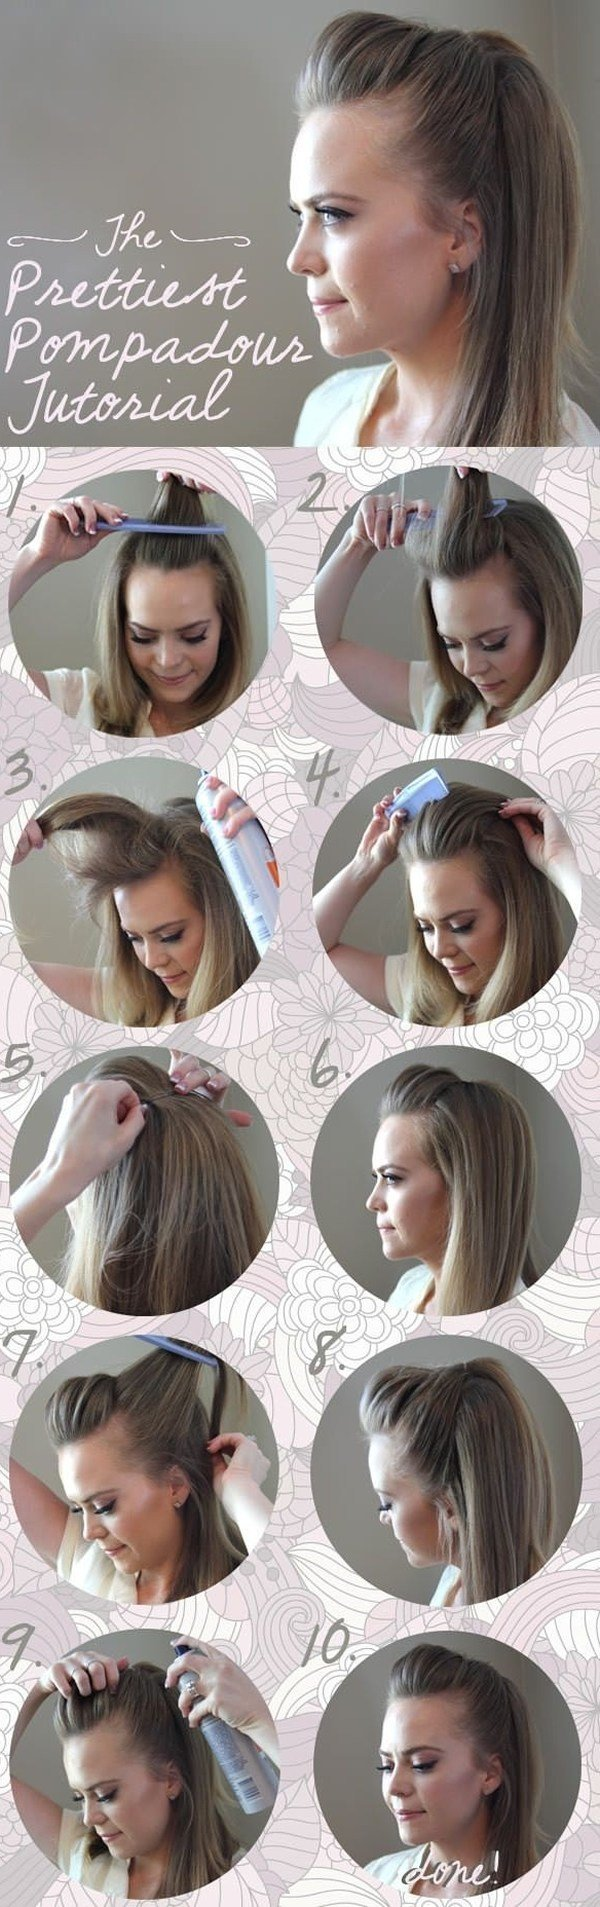 Free 13 Five Minute Hairstyles For School Stylequick Wallpaper